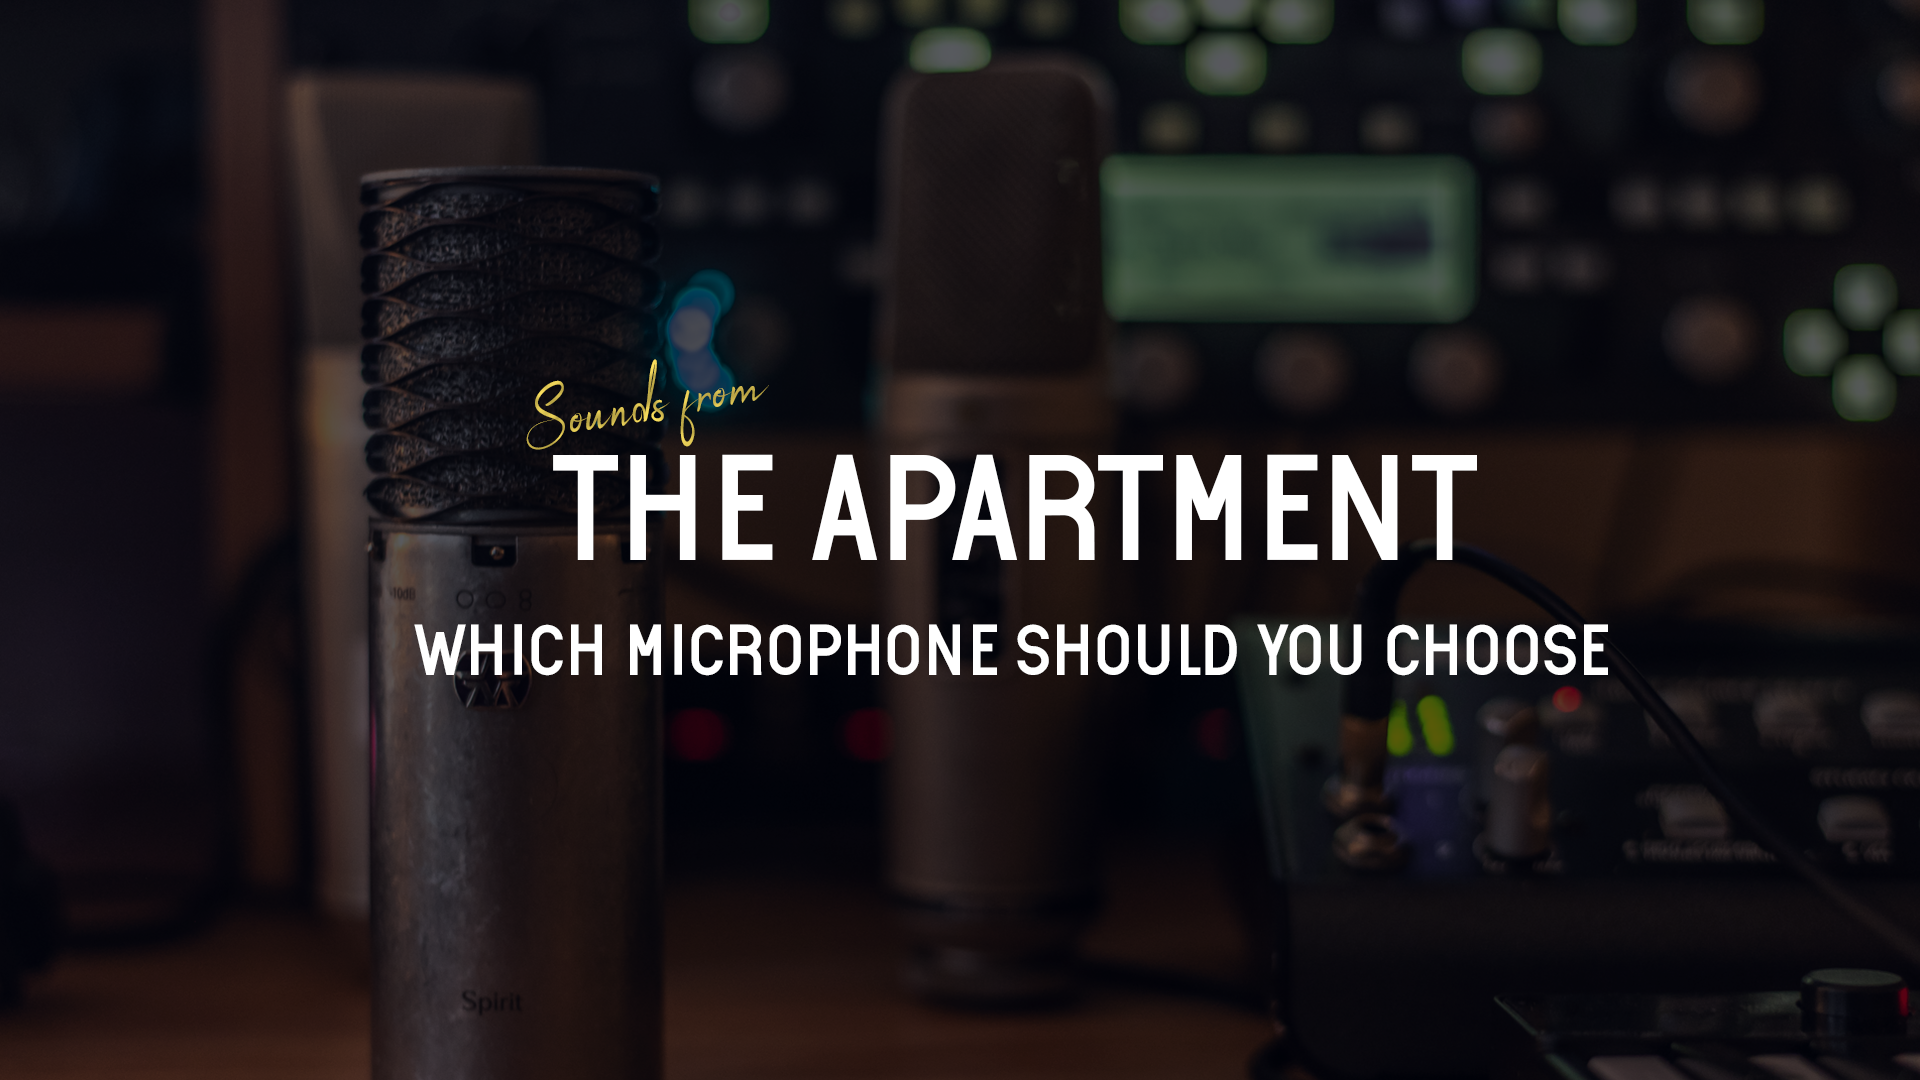 Sounds from the apartment article which microphone should you choose